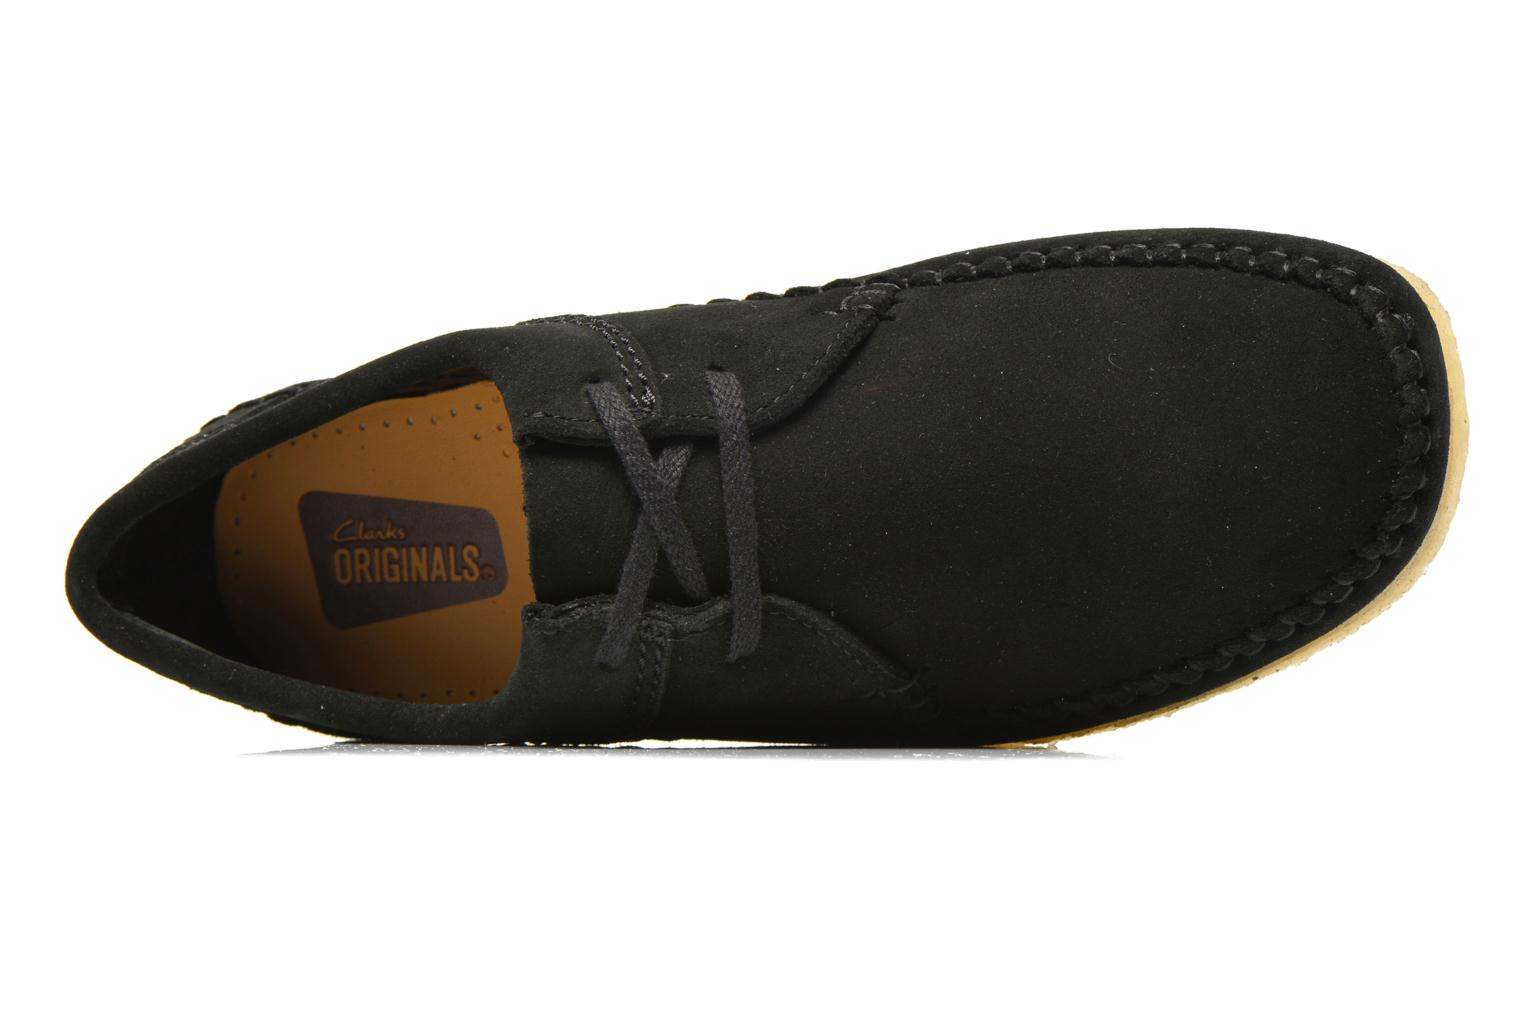 Lace-up shoes Clarks Originals Weaver M Black view from the left